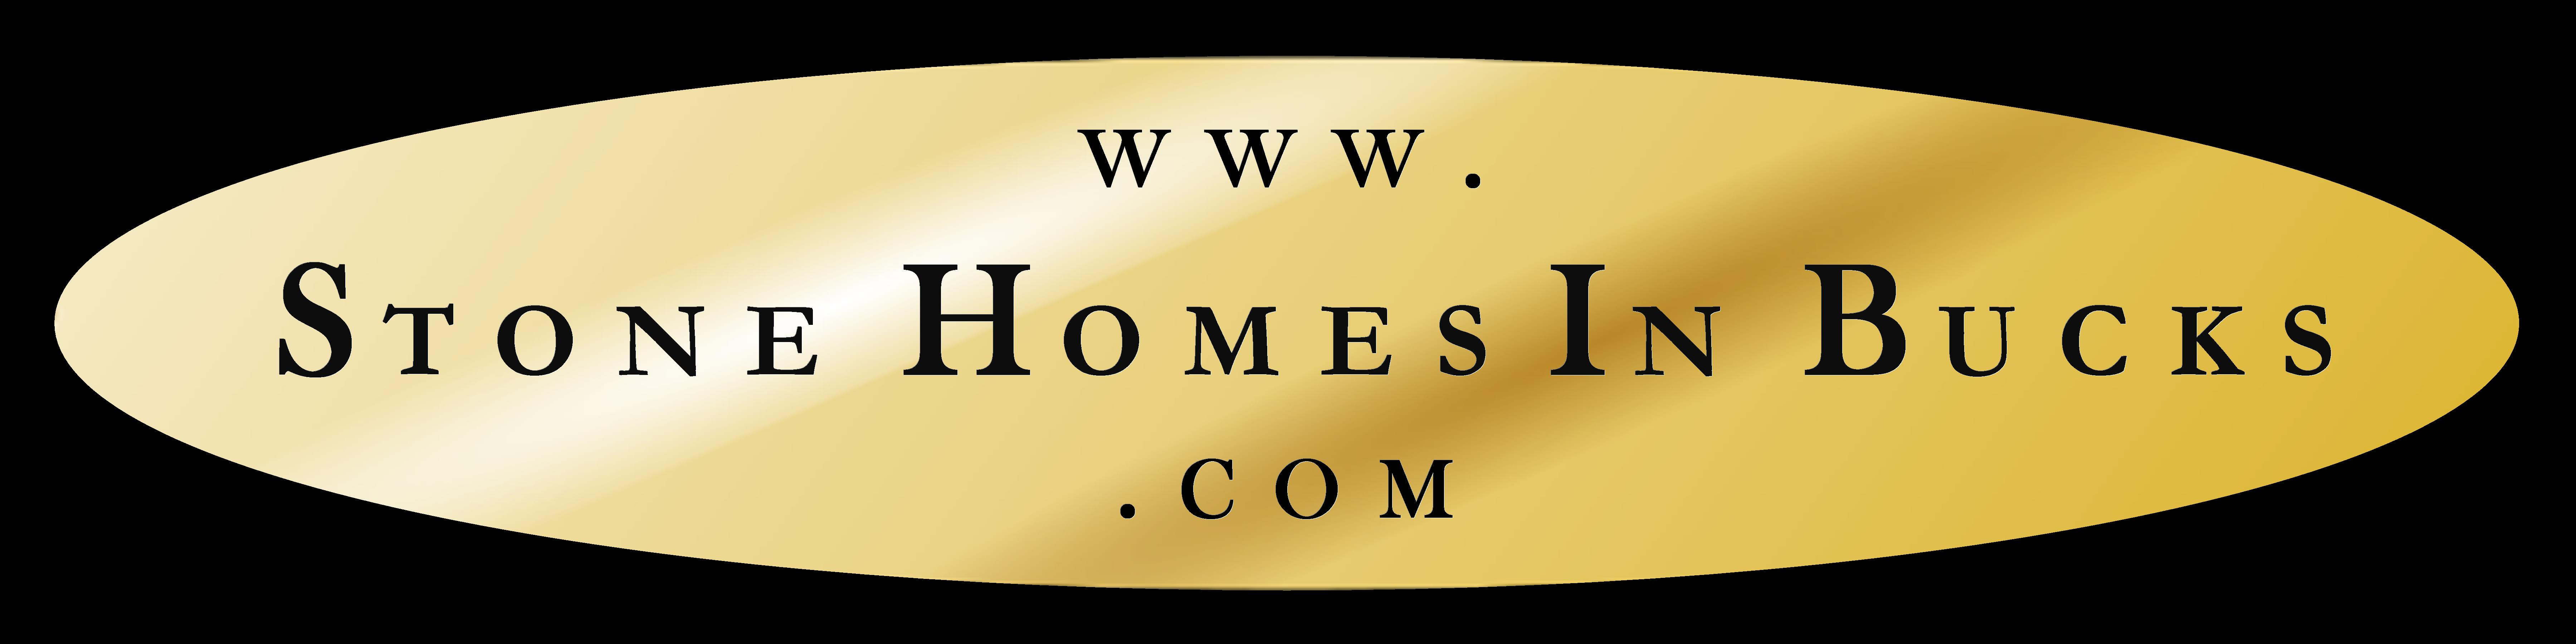 www.StoneHomesInBucks.com | Stone Homes In Bucks | Steve Walny Bucks County Realtor